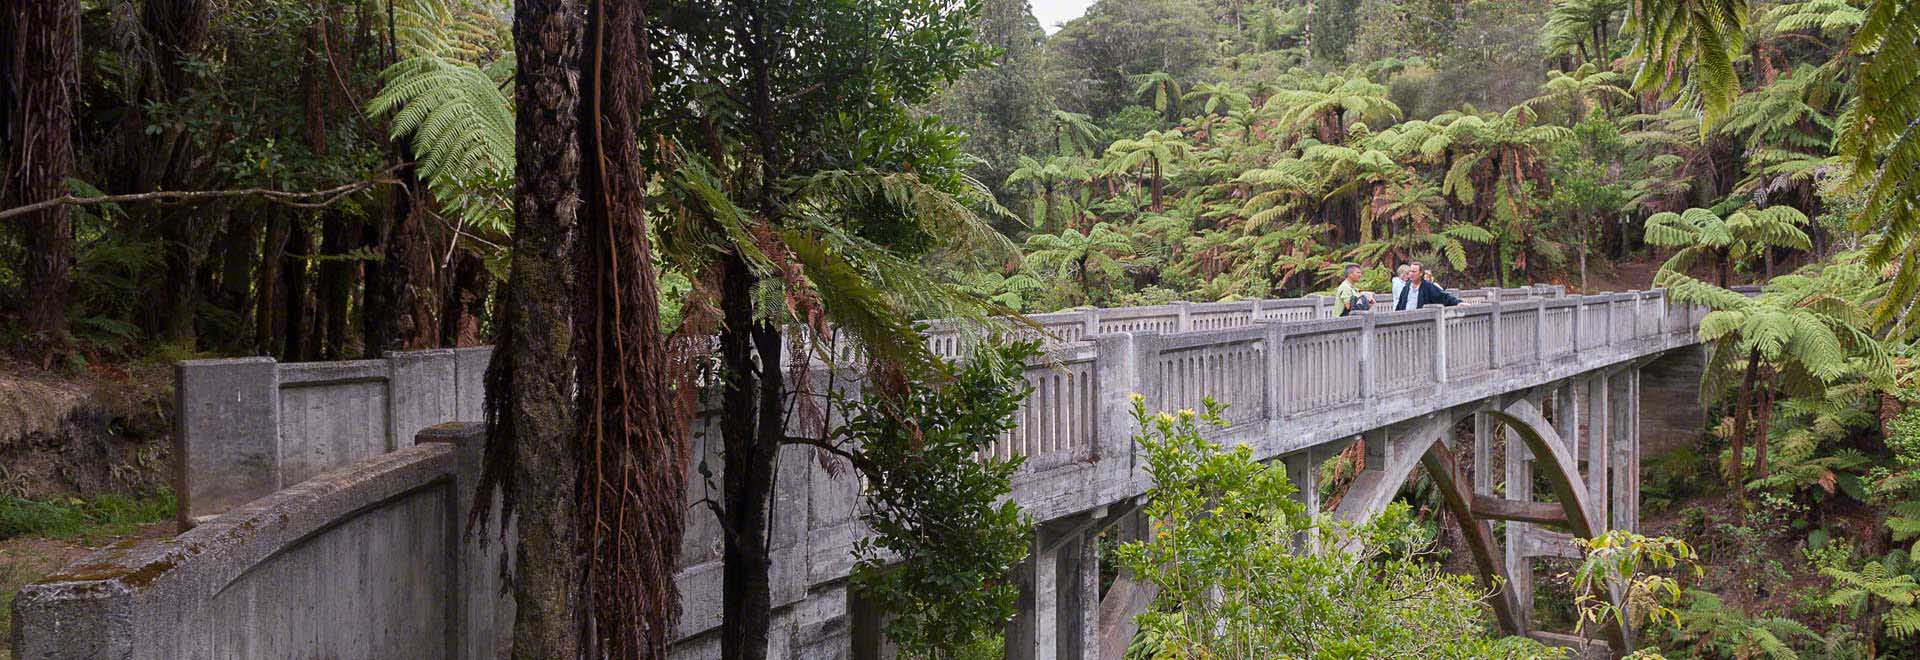 Bridge To Nowhere Whanganui